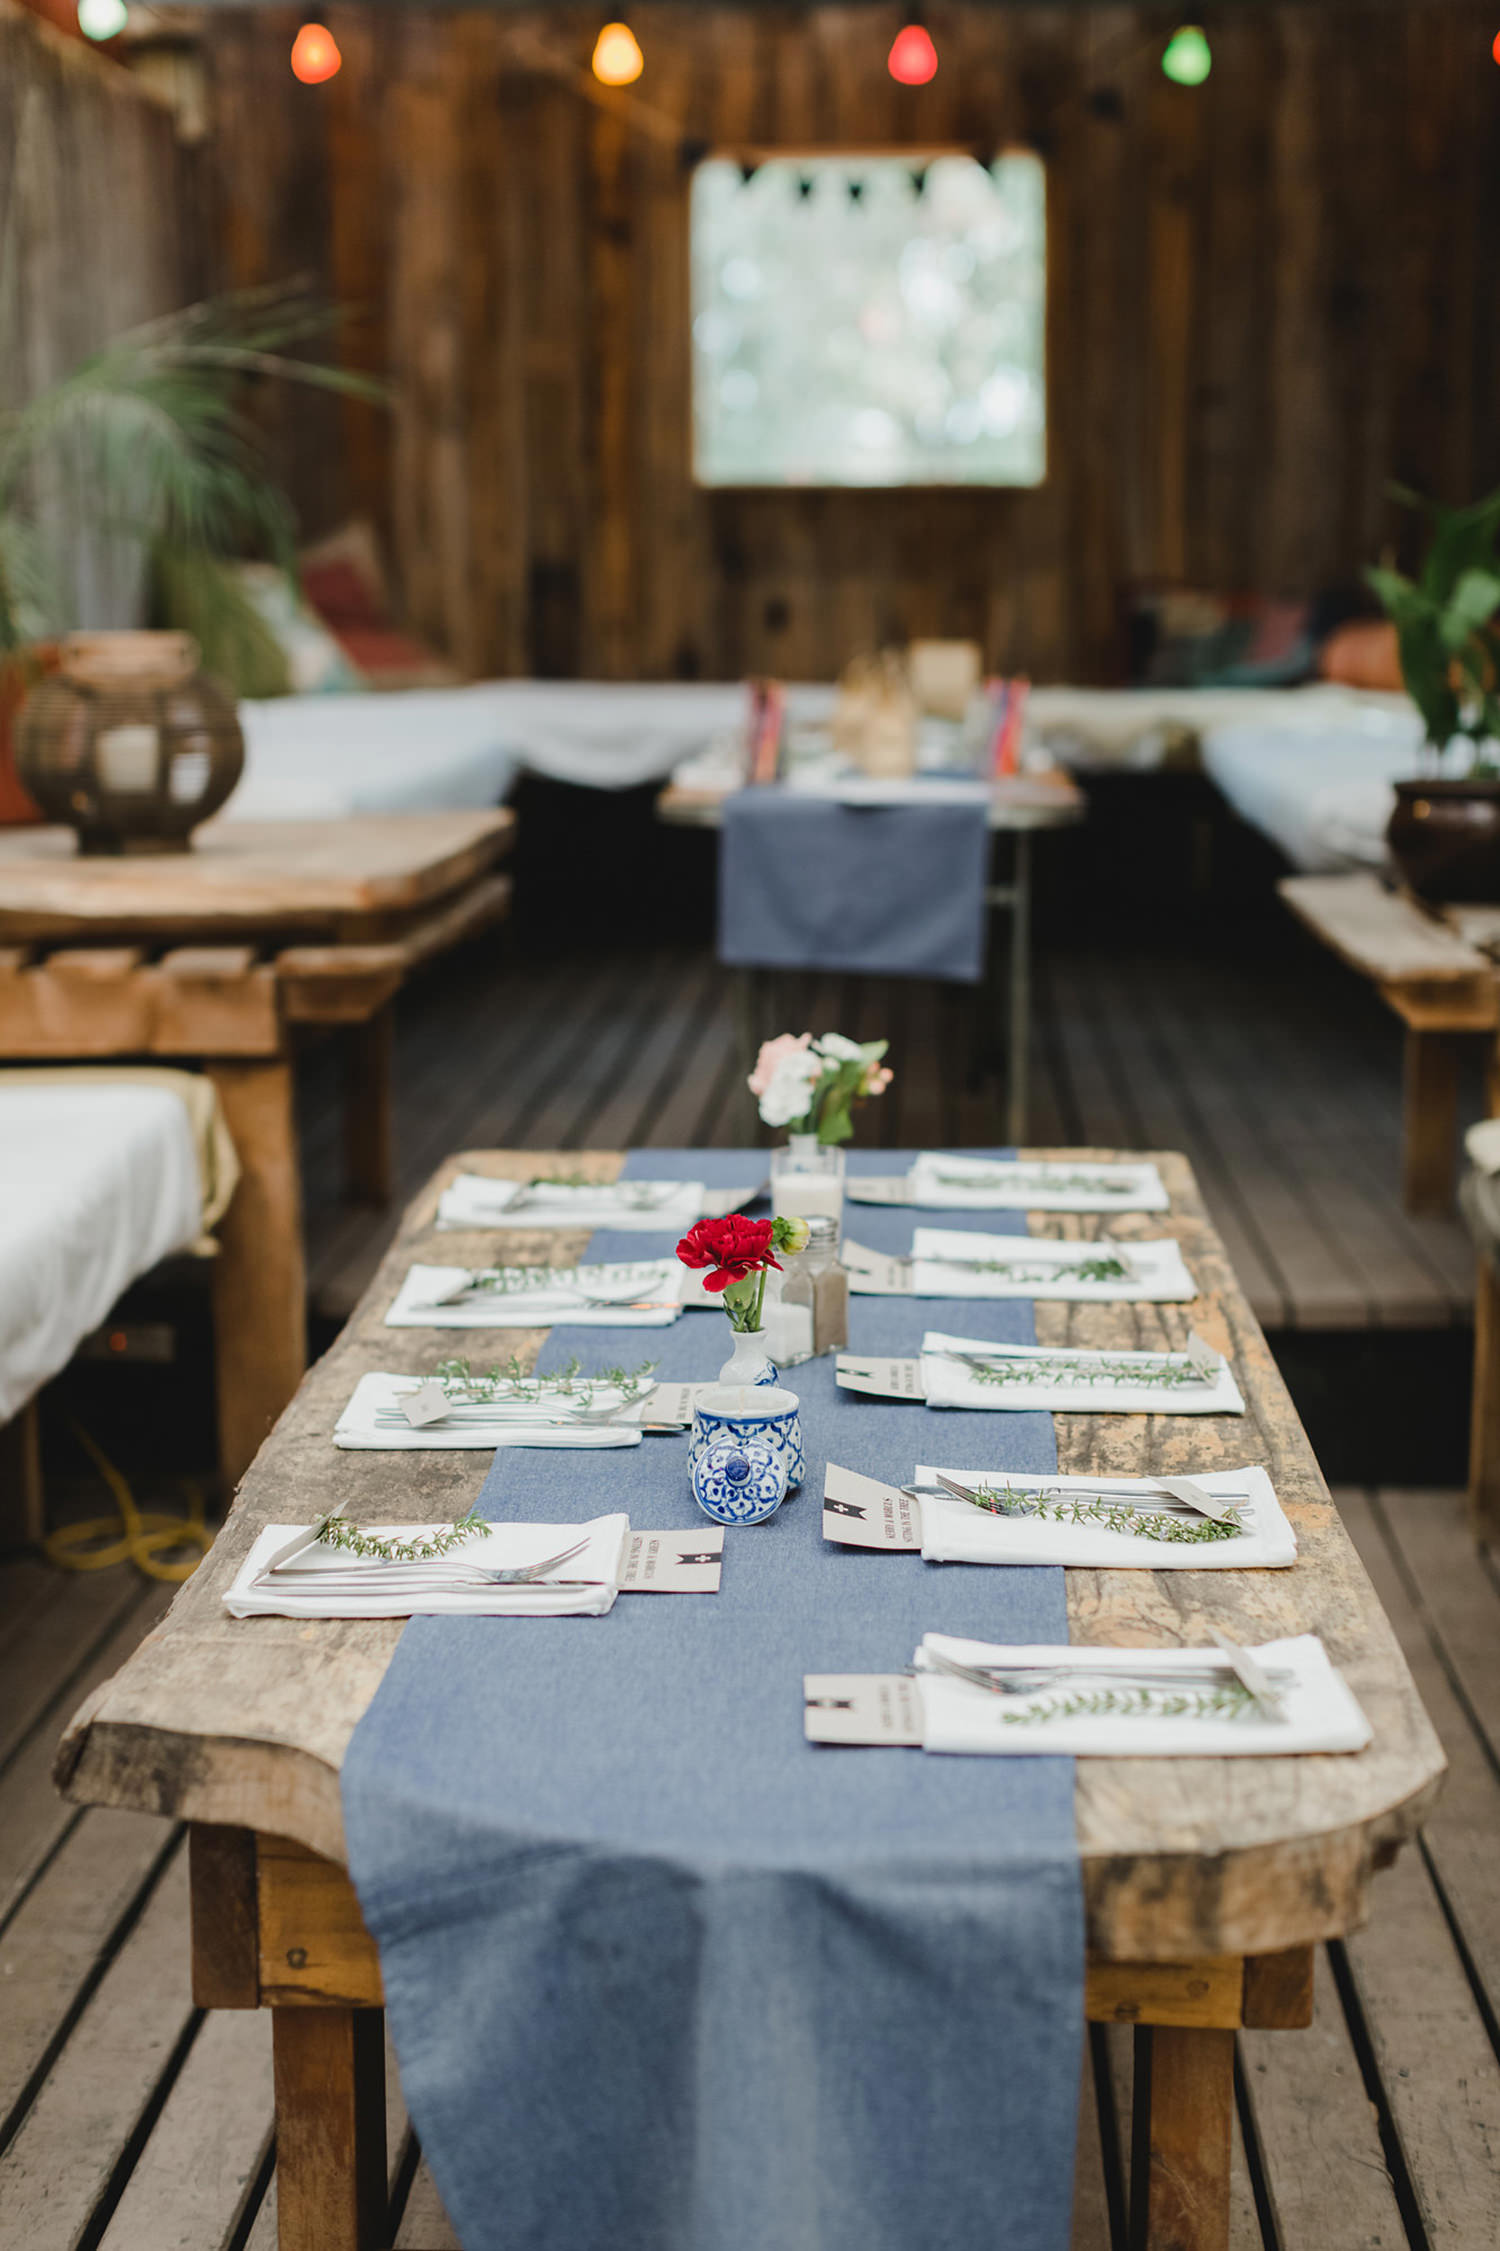 Crab Farm Winery Restaurant table setting